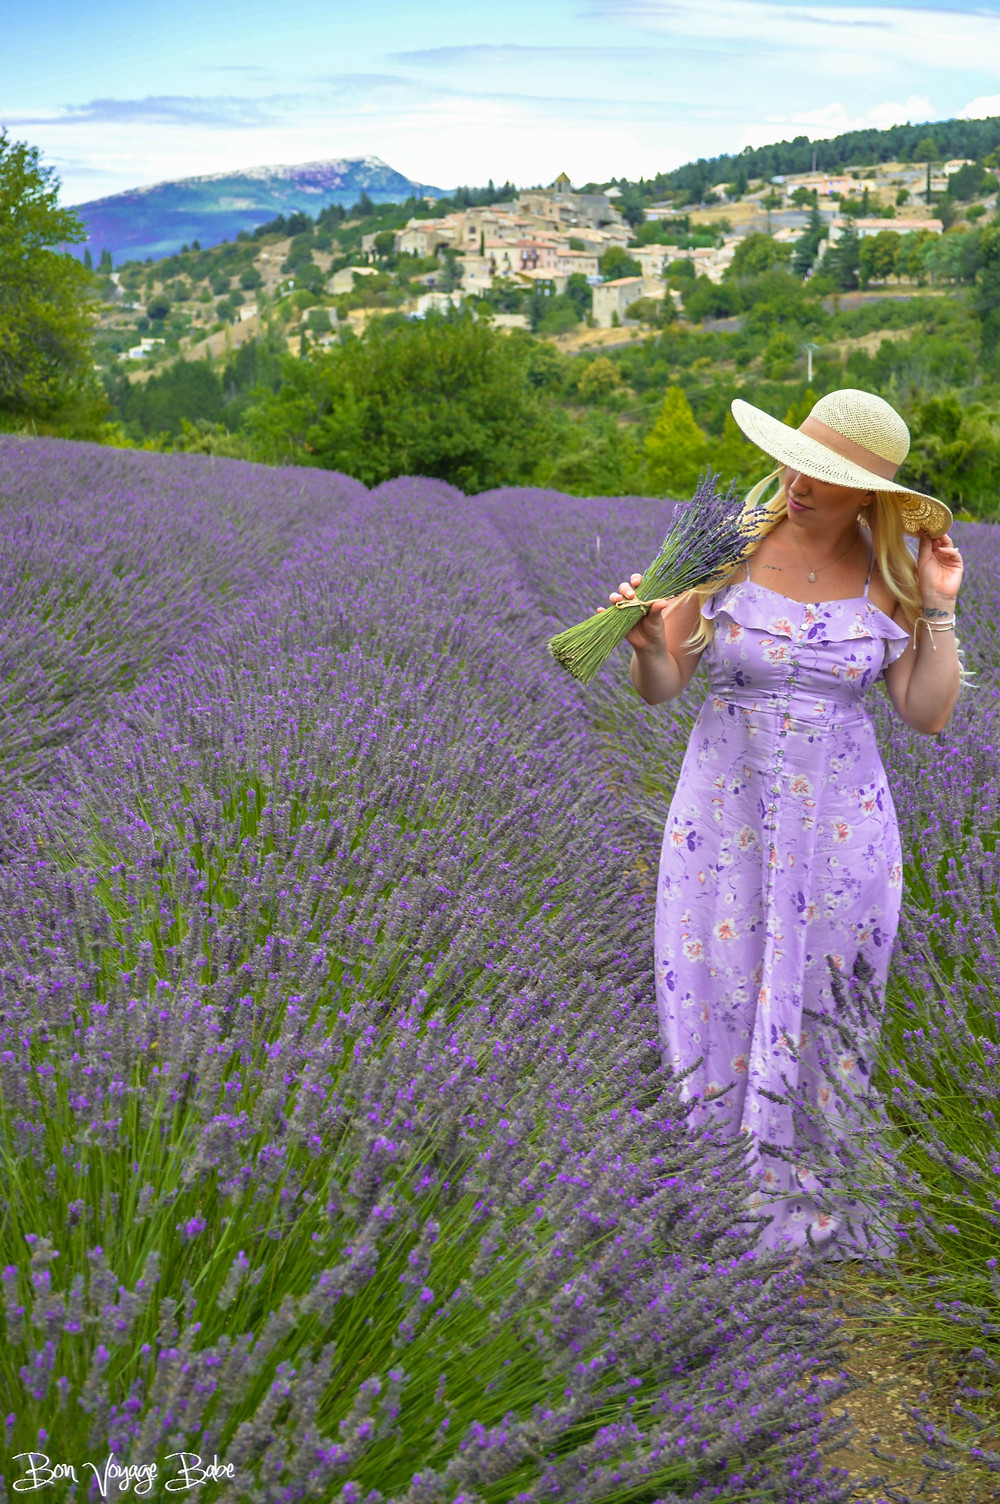 Plan a trip to Provence France